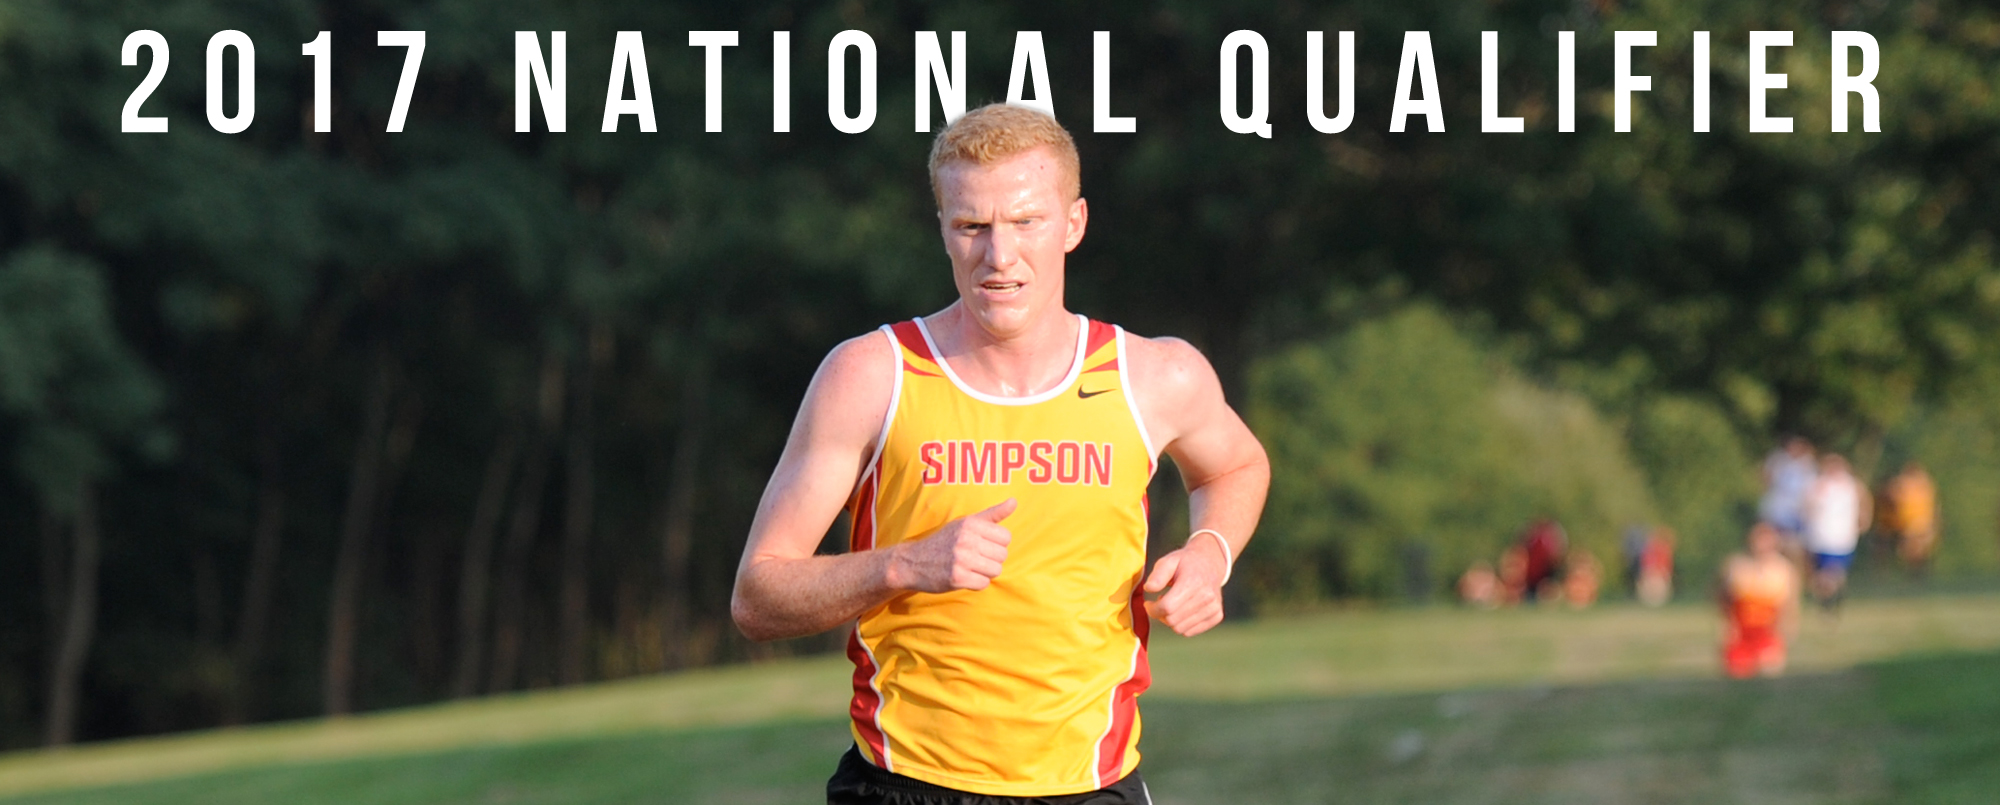 Ian McKenzie is Simpson's 13th cross country national qualifier in school history.